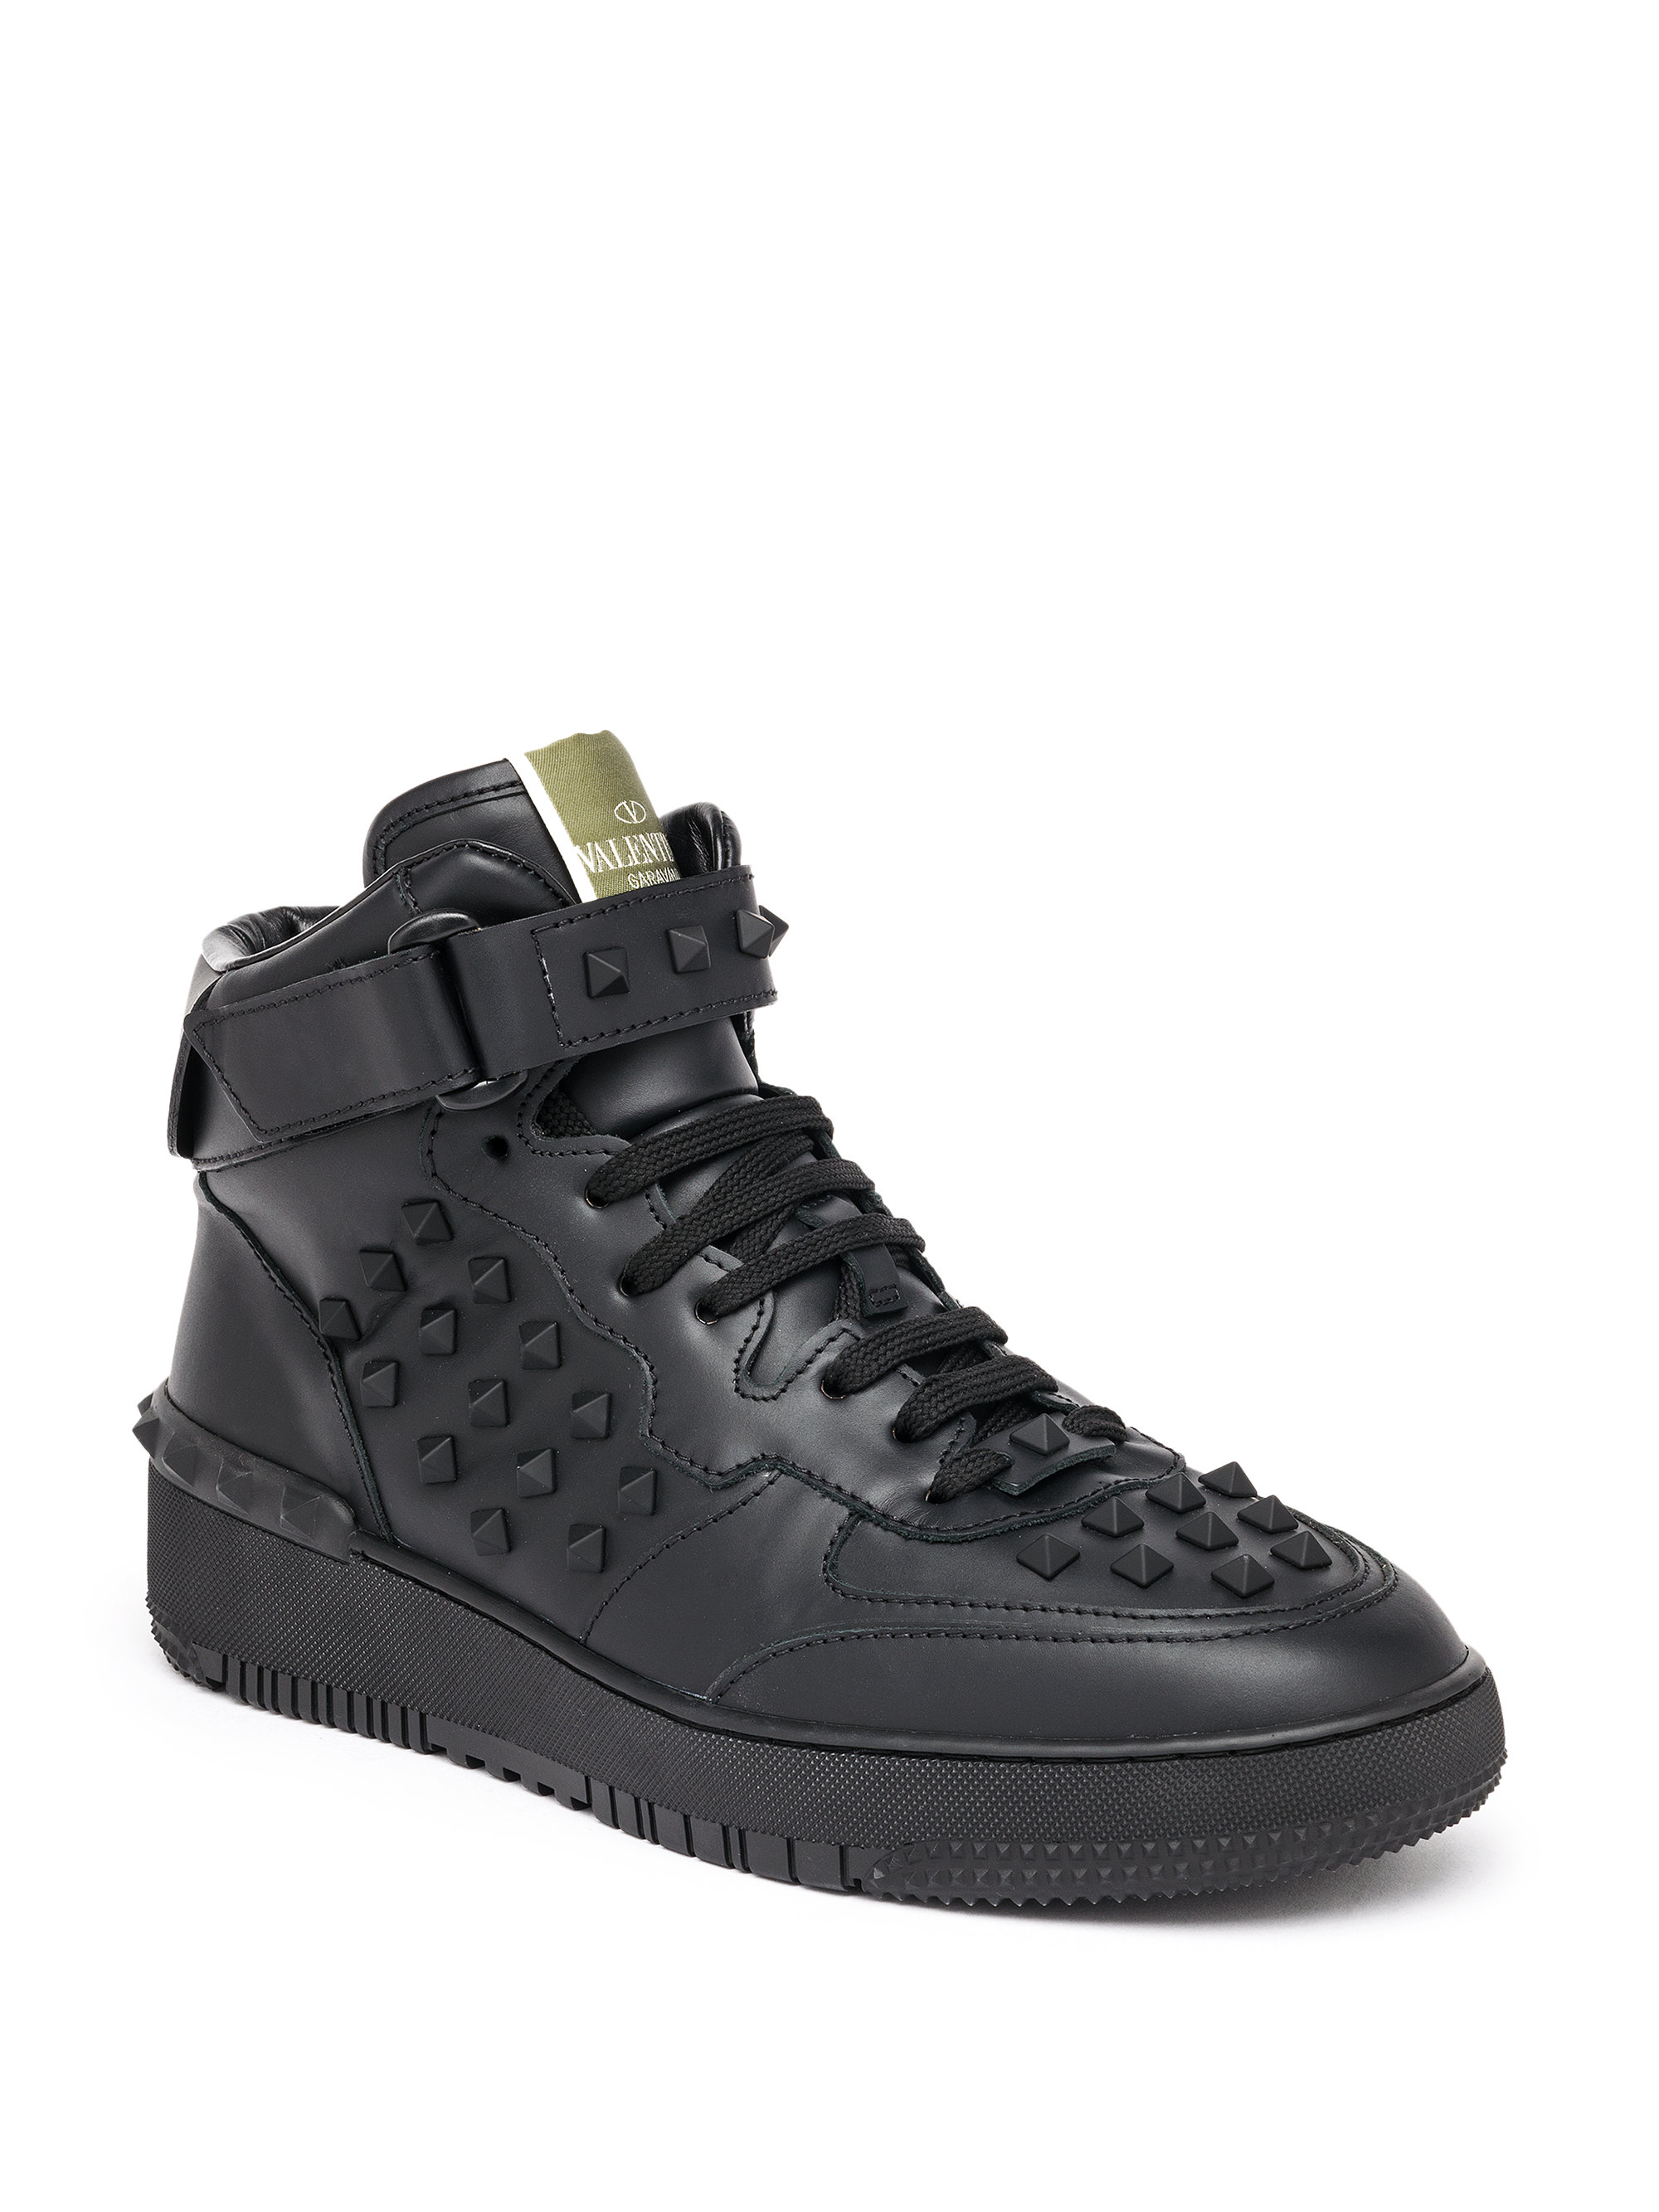 Lyst Valentino Rockstud Leather High Top Sneakers In Black For Men